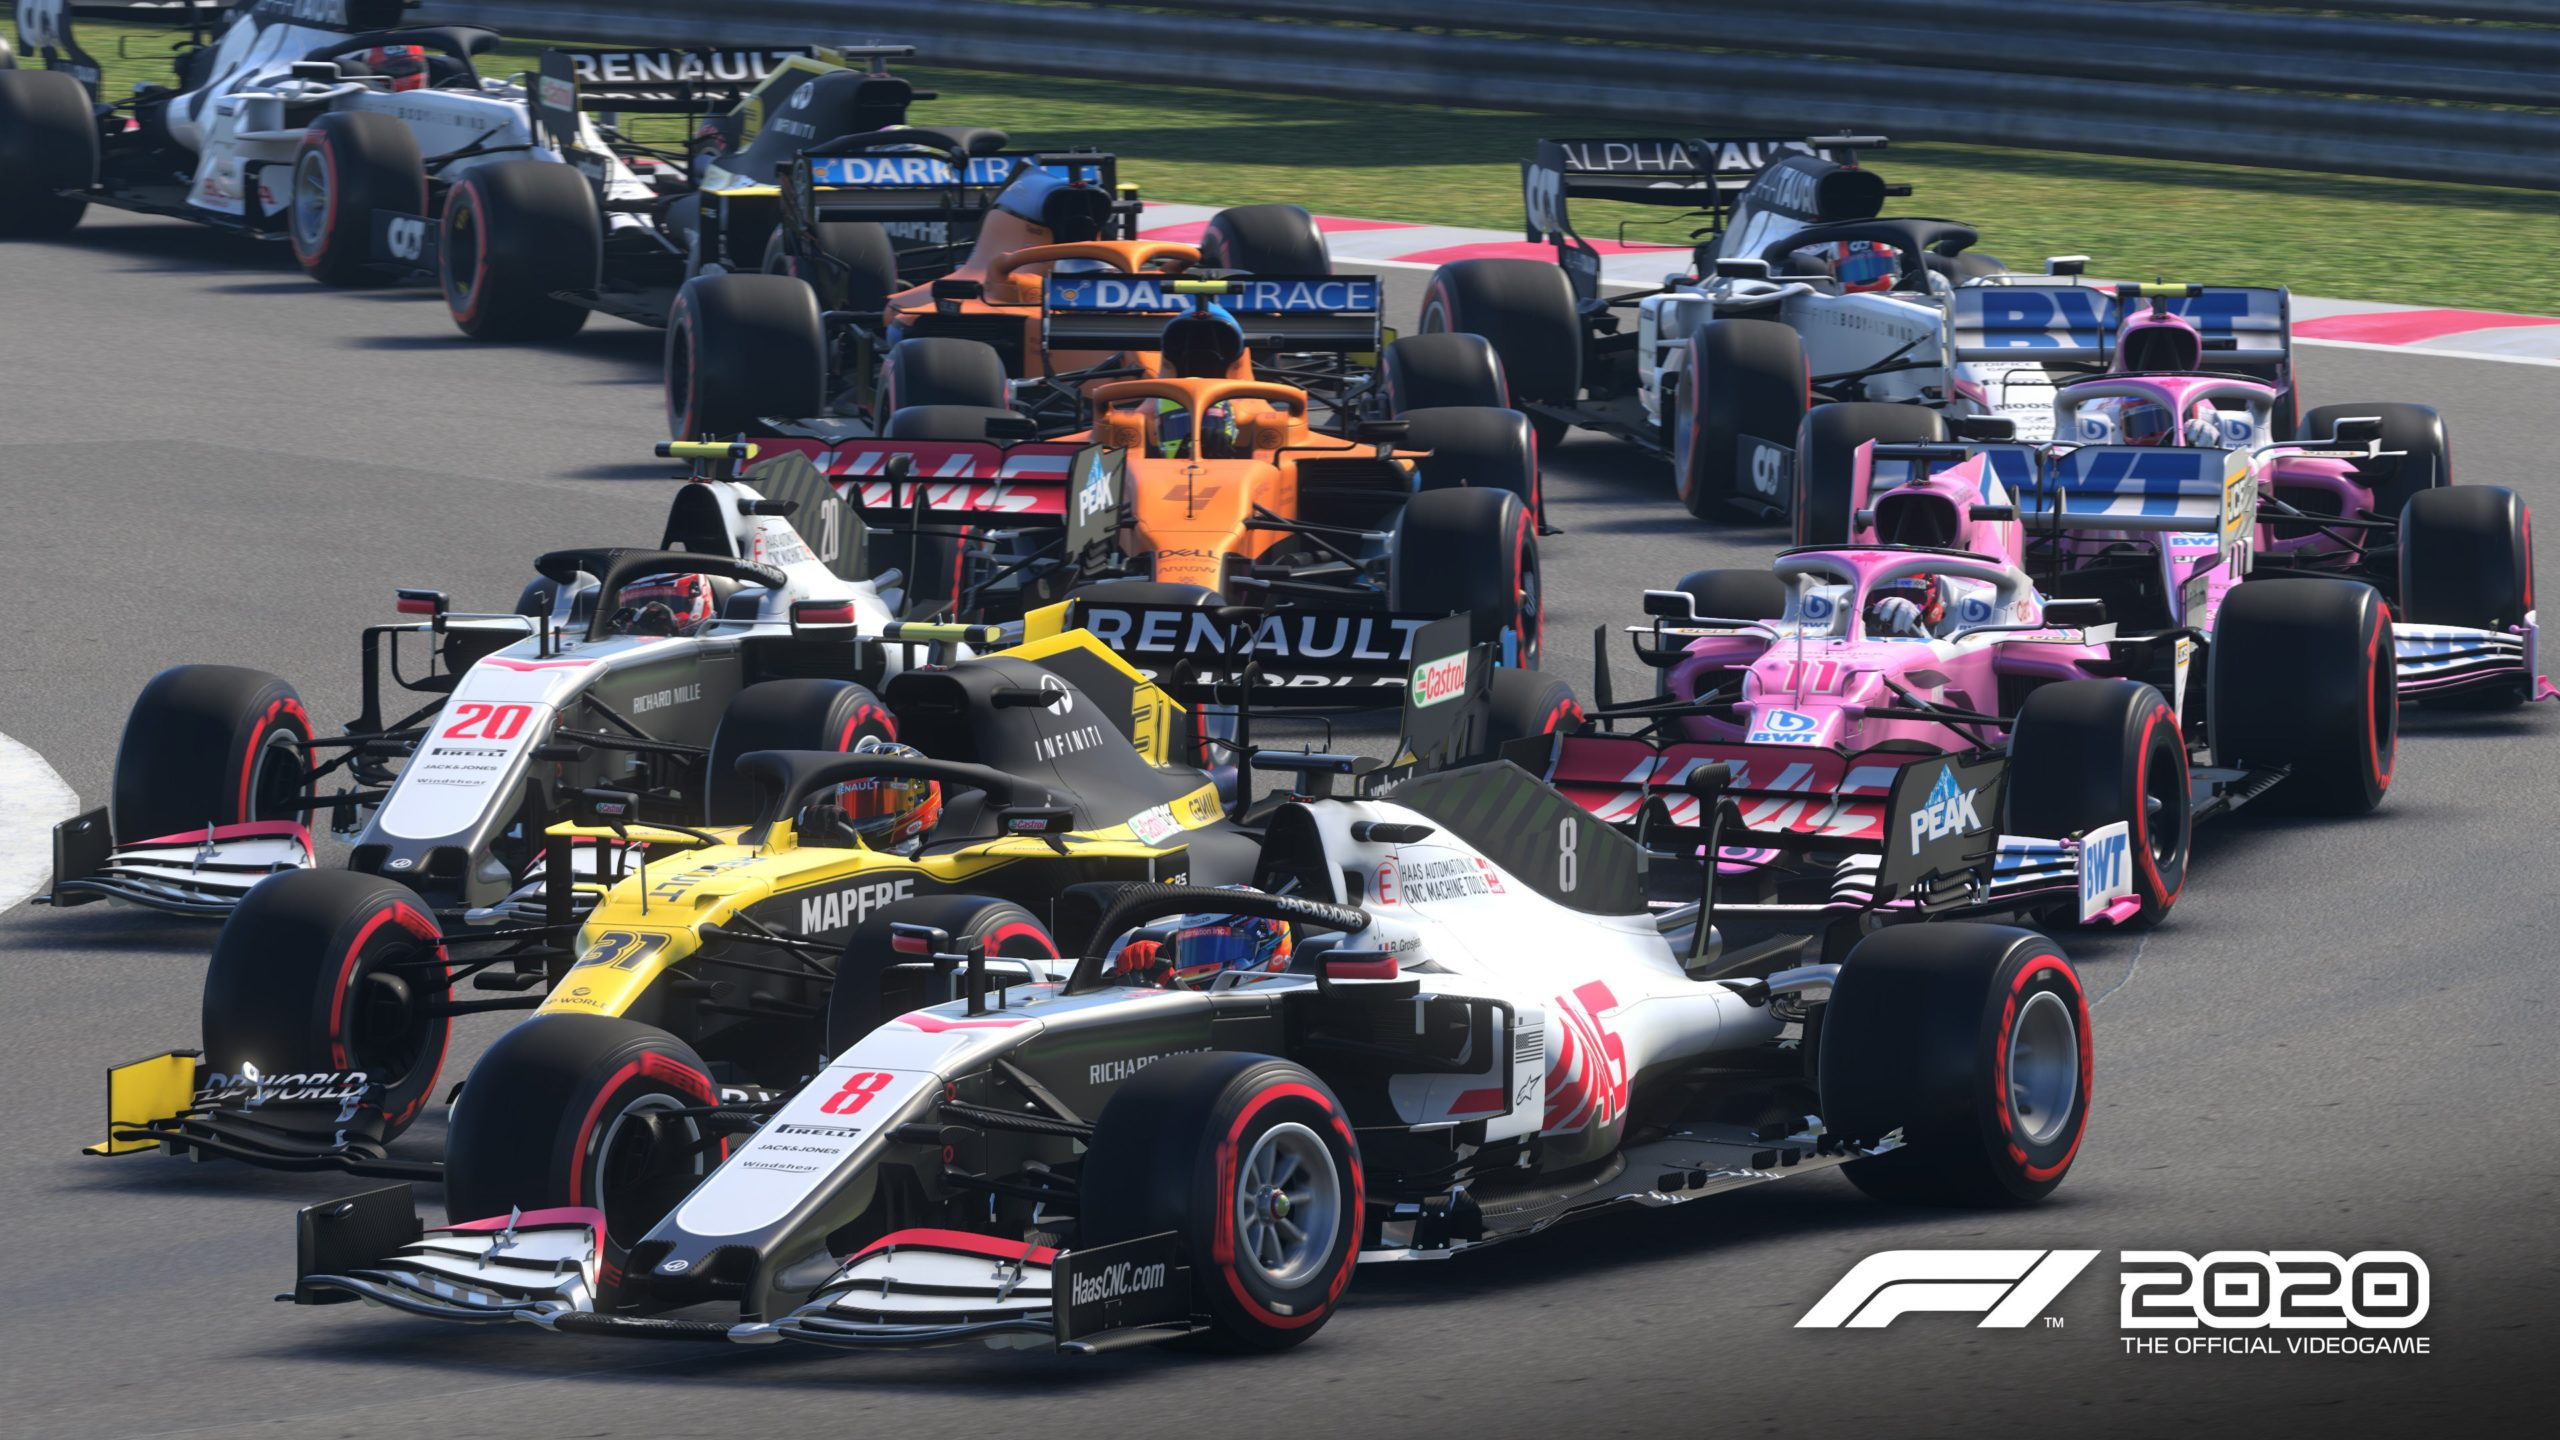 F1_2020_Hungary_Screen_06_4K-scaled F1 2020 – Plenty of New Previews